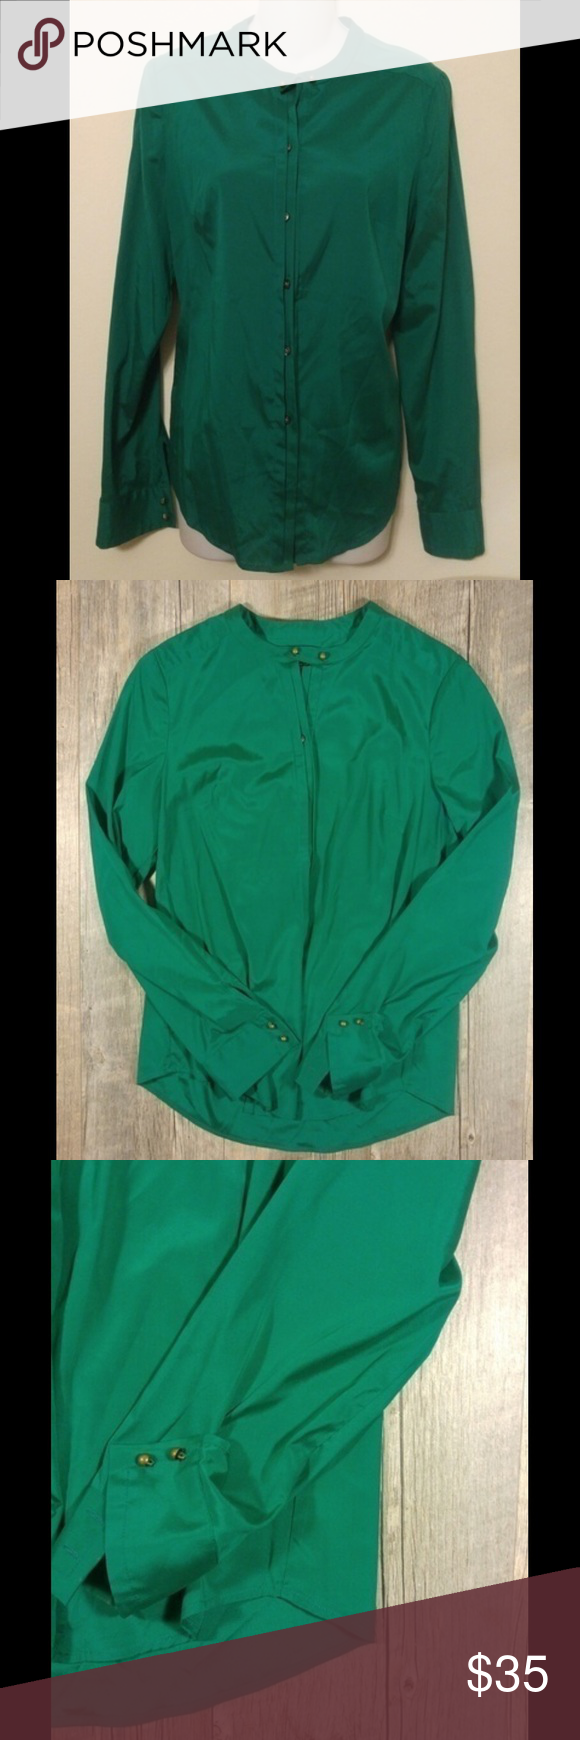 b264dd127e094 Green silk blouse Emerald green silk blouse. Hidden buttons all the way  down. Long sleeve. 93% silk